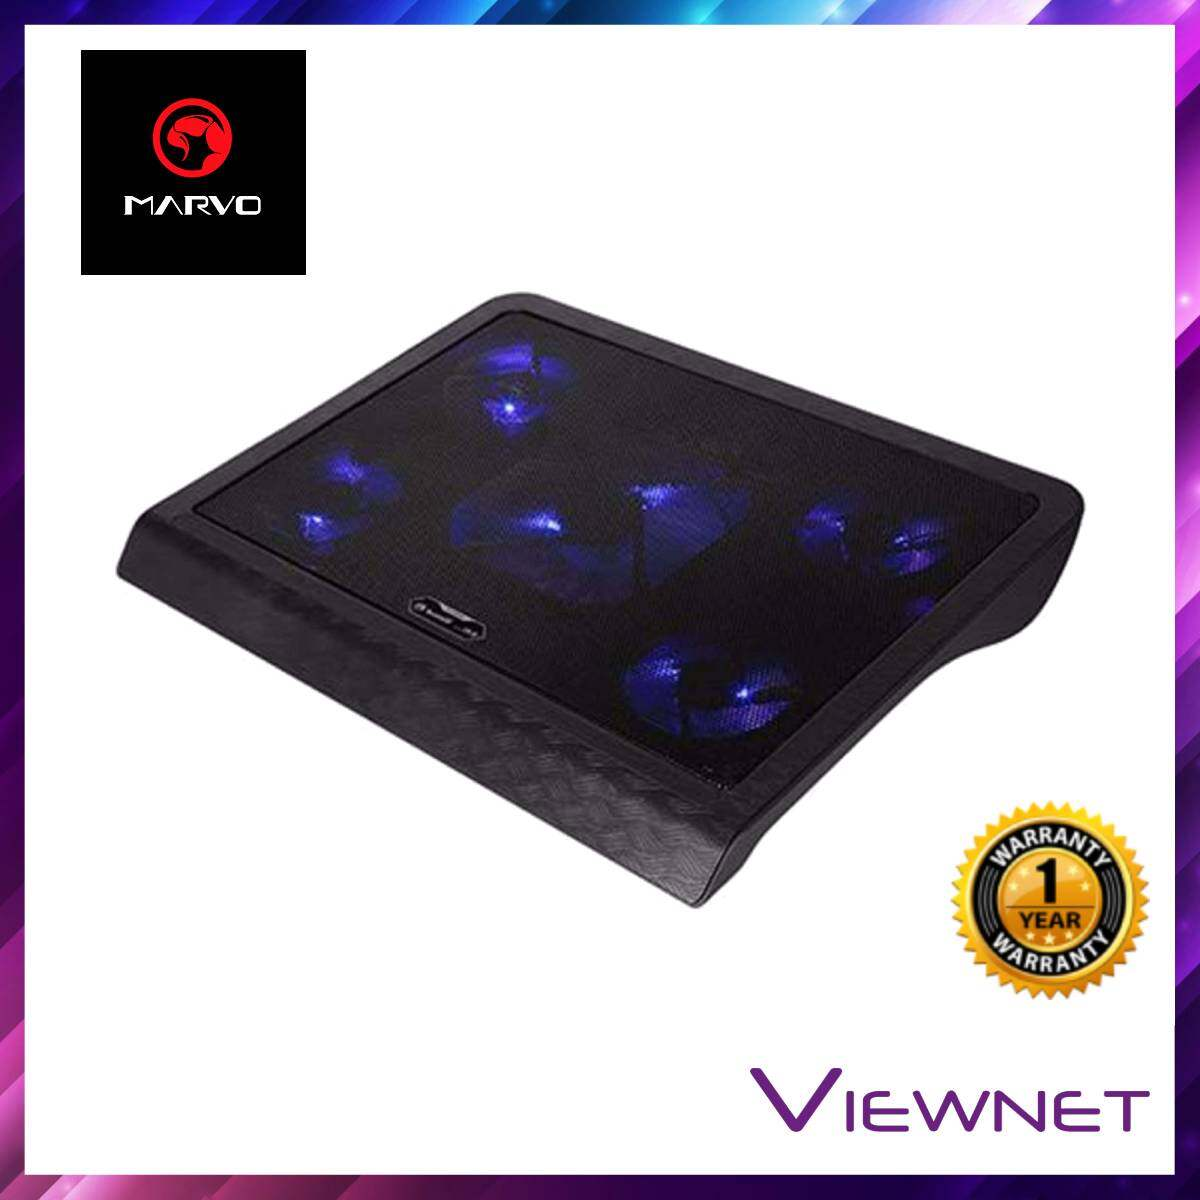 MARVO Notebook 4 Fans With LED Blue Cooler Pad (FN-33BL)